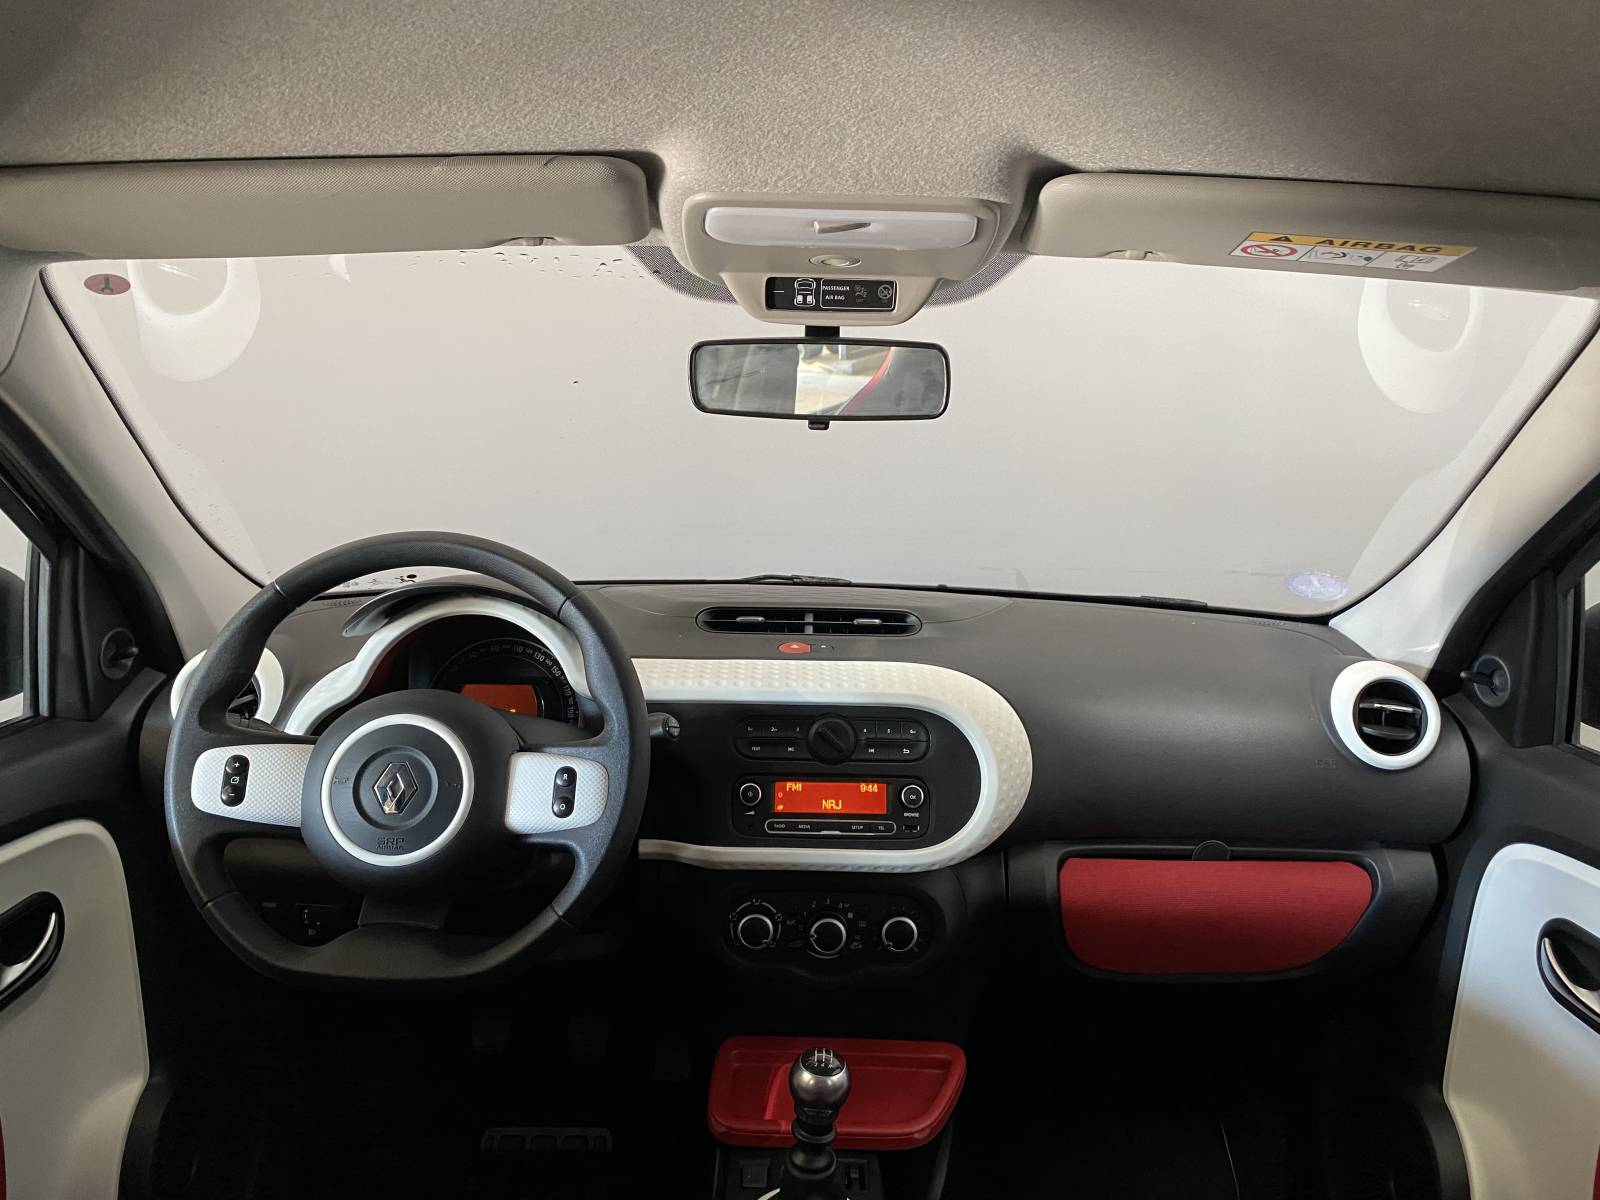 RENAULT Twingo III 0.9 TCe 90 Energy - véhicule d'occasion - Site Internet Faurie - Renault - Faurie Auto Bergerac - 24100 - Bergerac - 18